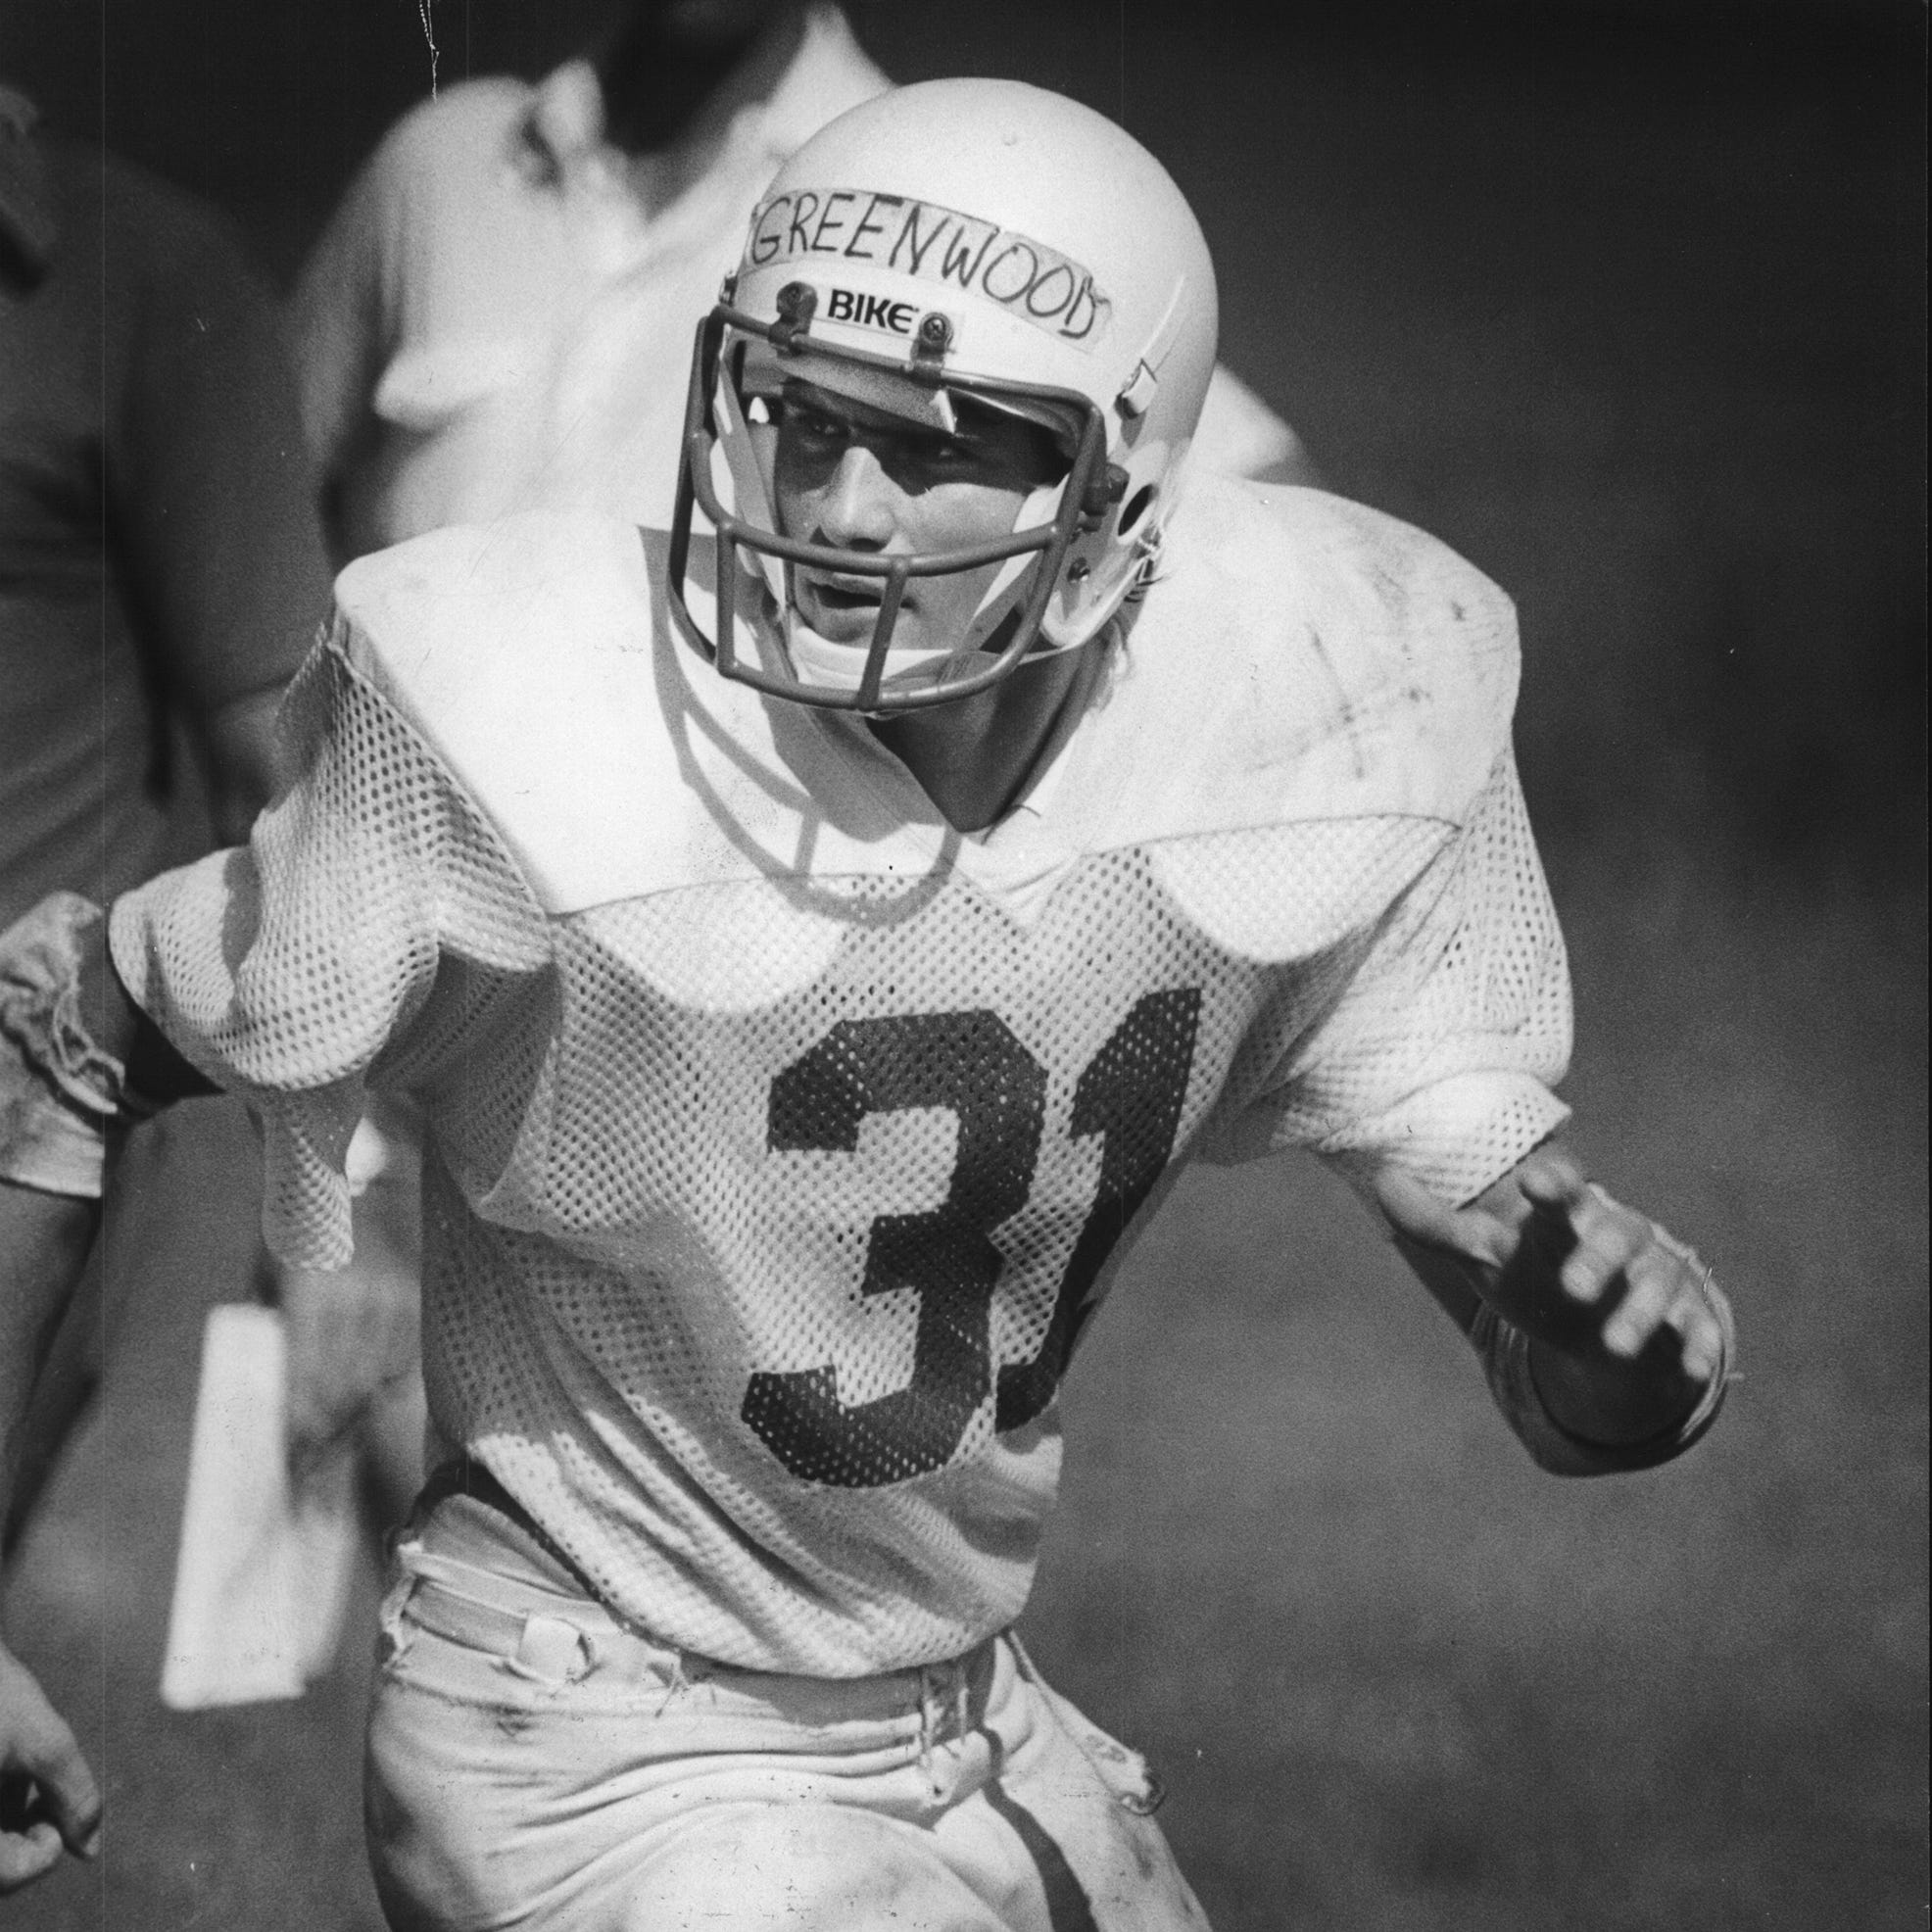 Top 10 best high school athletes in Wisconsin history profile: David Greenwood